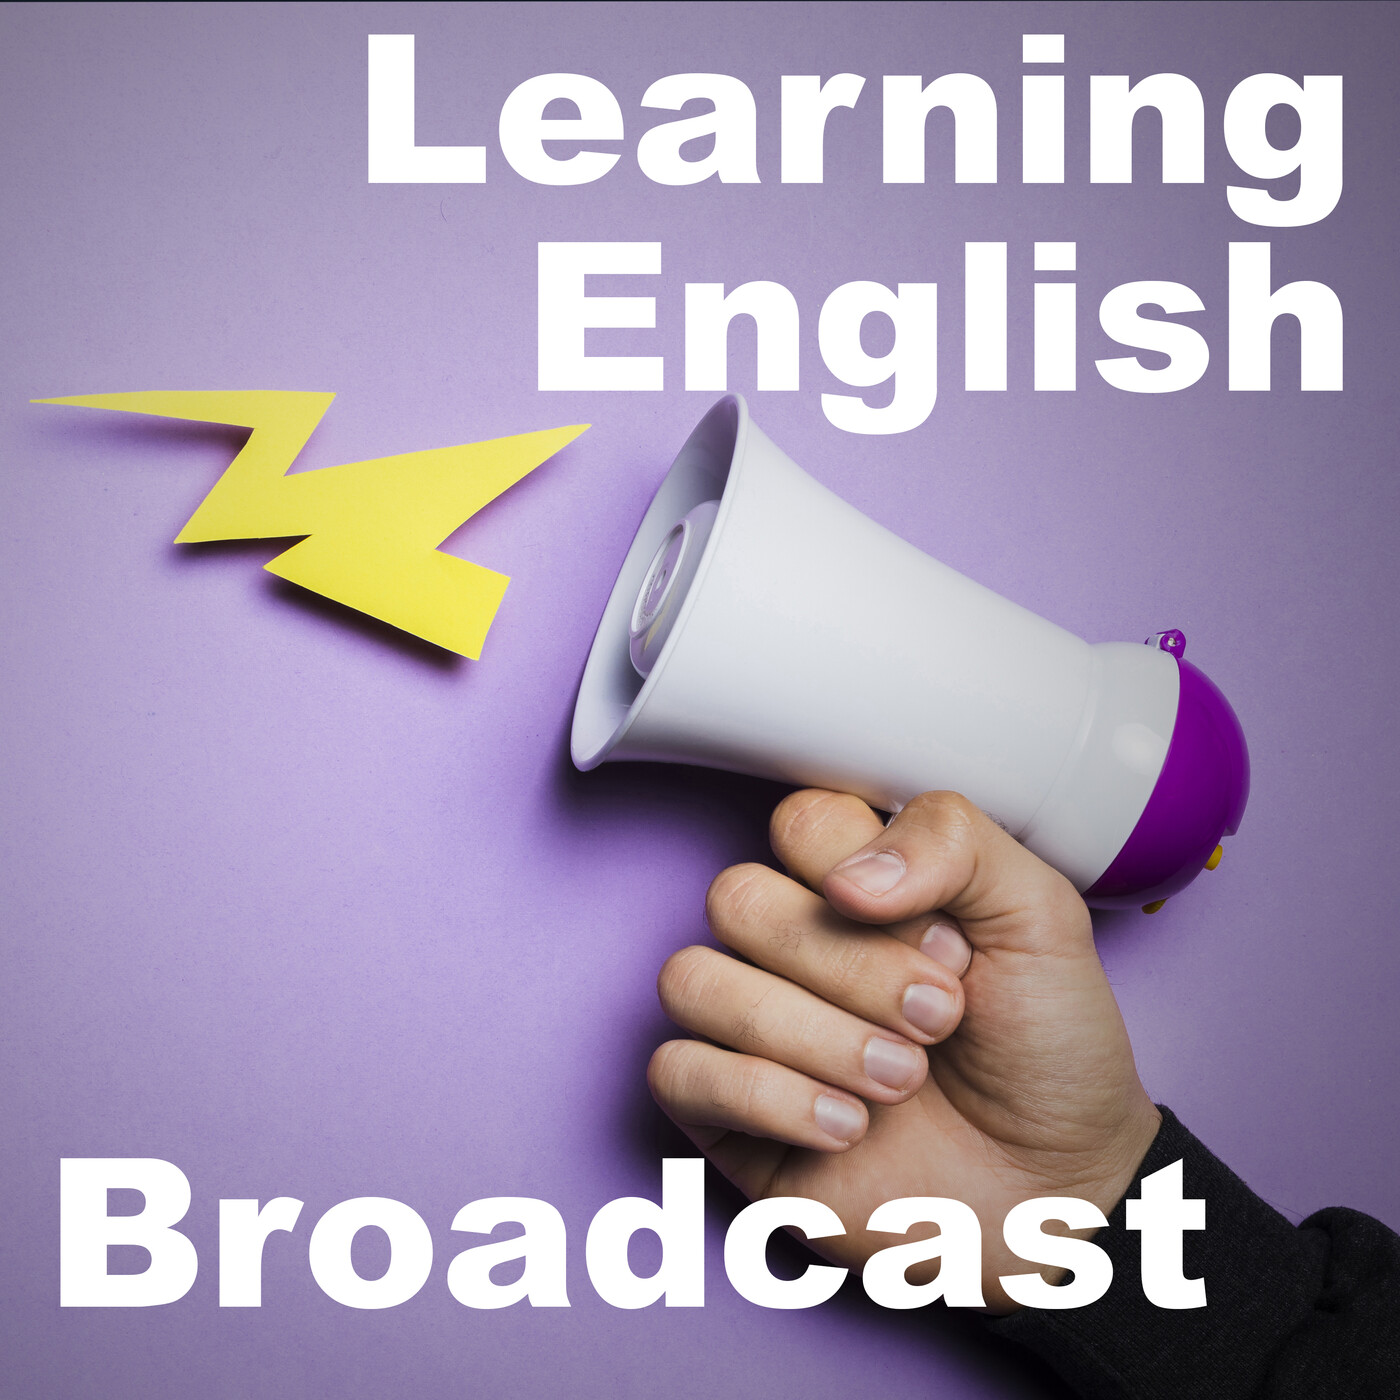 Learning English Broadcast - October 20, 2020